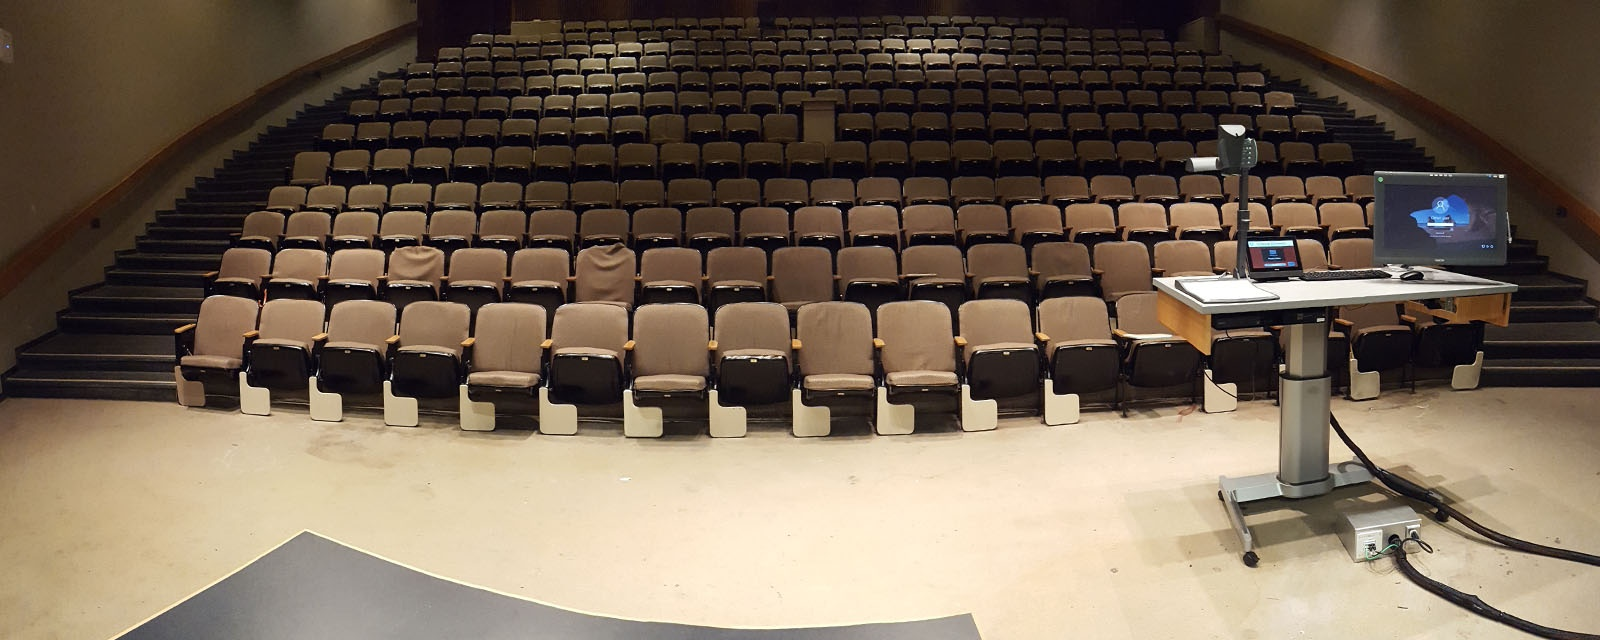 Panorama of Stolkin from rear of room, stadium chairs, teaching station front right